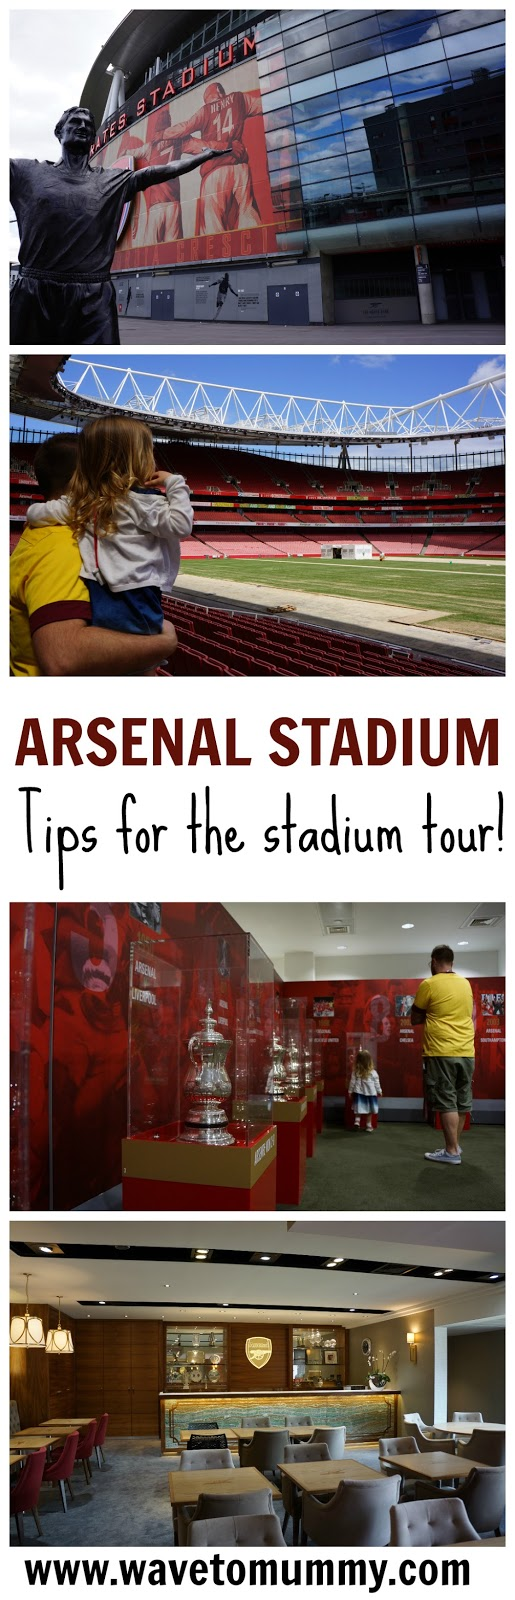 Reviewing the Arsenal Stadium tour in London, UK - lots of pictures and top tips on how to get there and what to do. The post also explains what the tour is like with kids, and how Arsenal Stadium Tour is suitable for families. This is a great place for a Gunners fan to visit, and would be great for any football lovers.